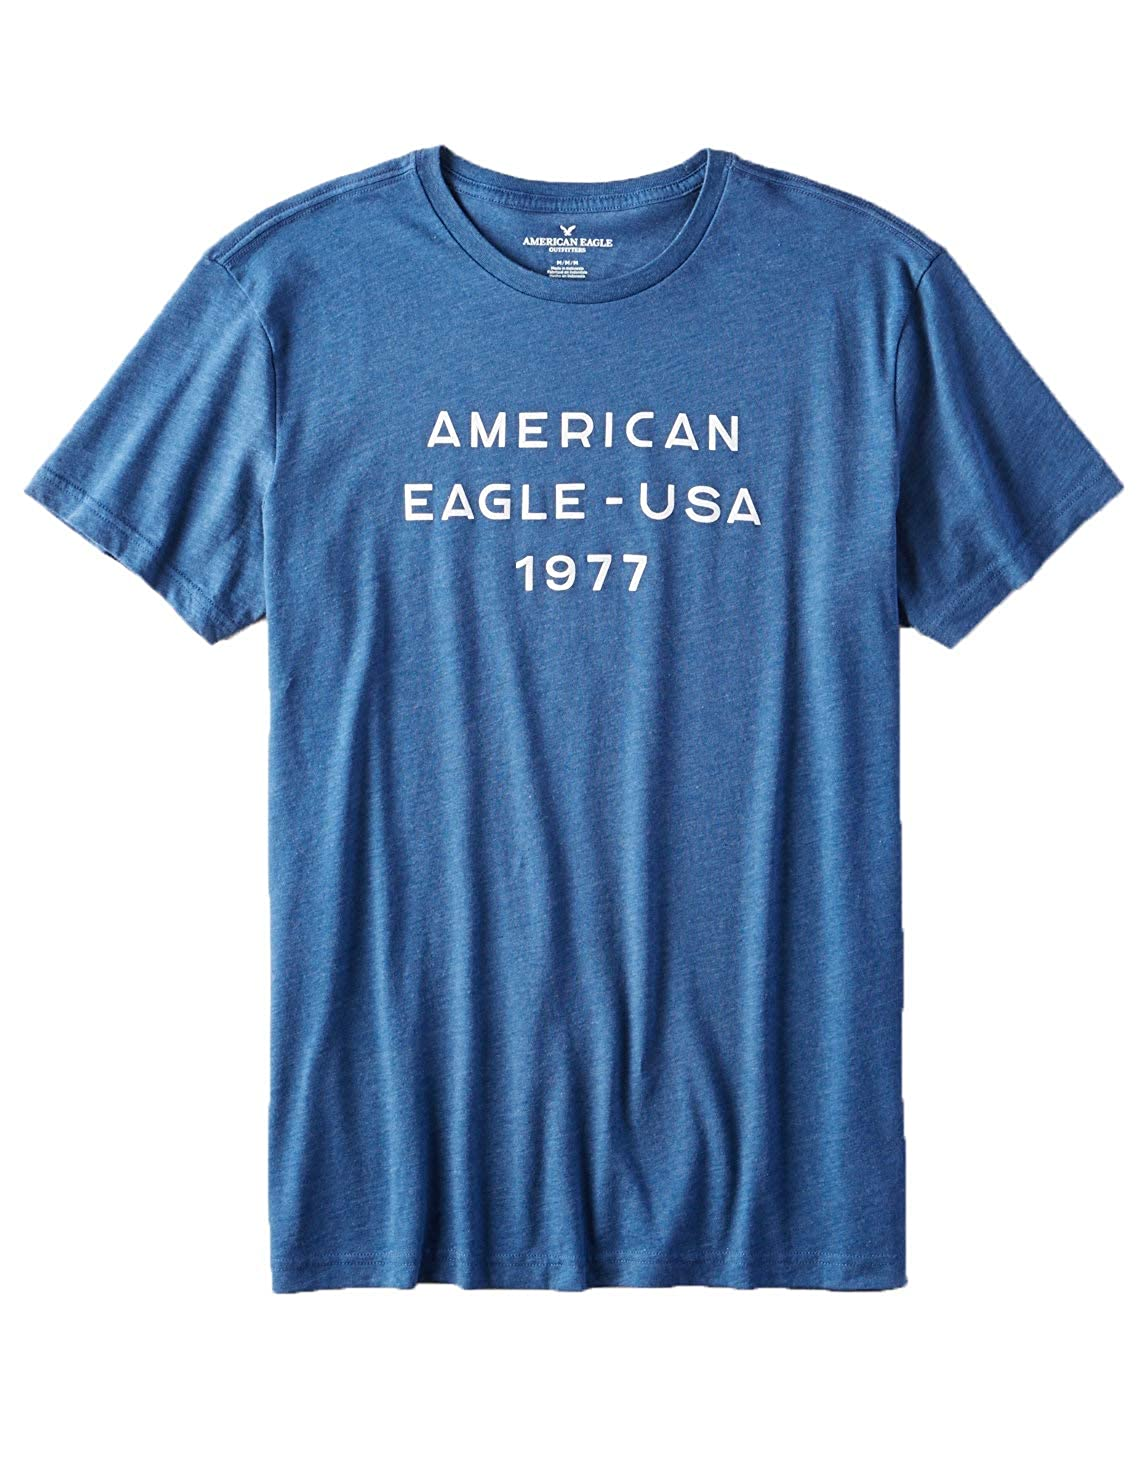 55aa648b Amazon.com: American Eagle Outfitters Mens Graphic Tee, Darkness Falls  (XL): Clothing